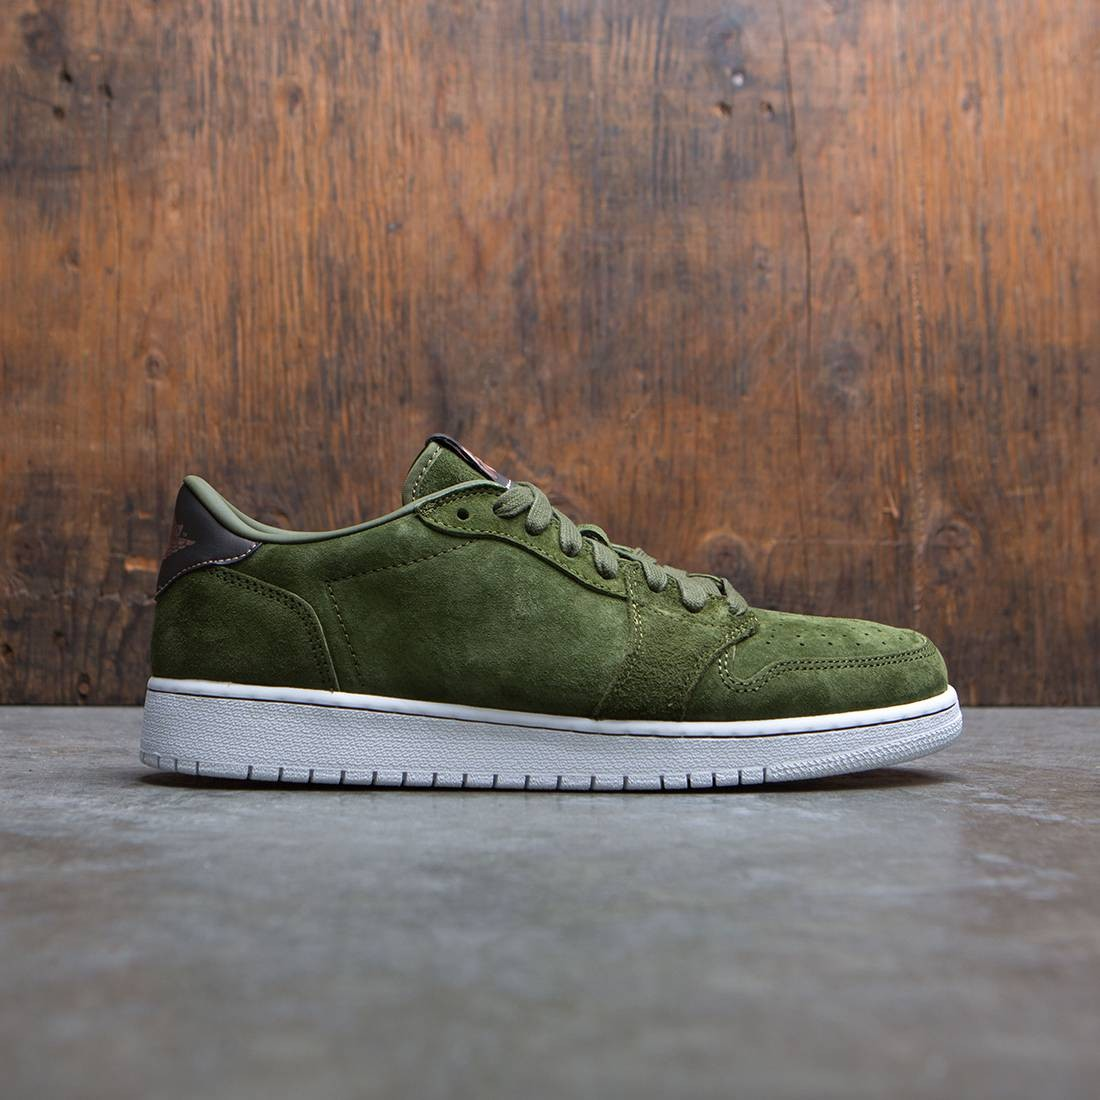 32885717f37d11 jordan big kids girls  air jordan 1 retro low no swoosh heiress collection  gs green legion green mtlc red bronze white